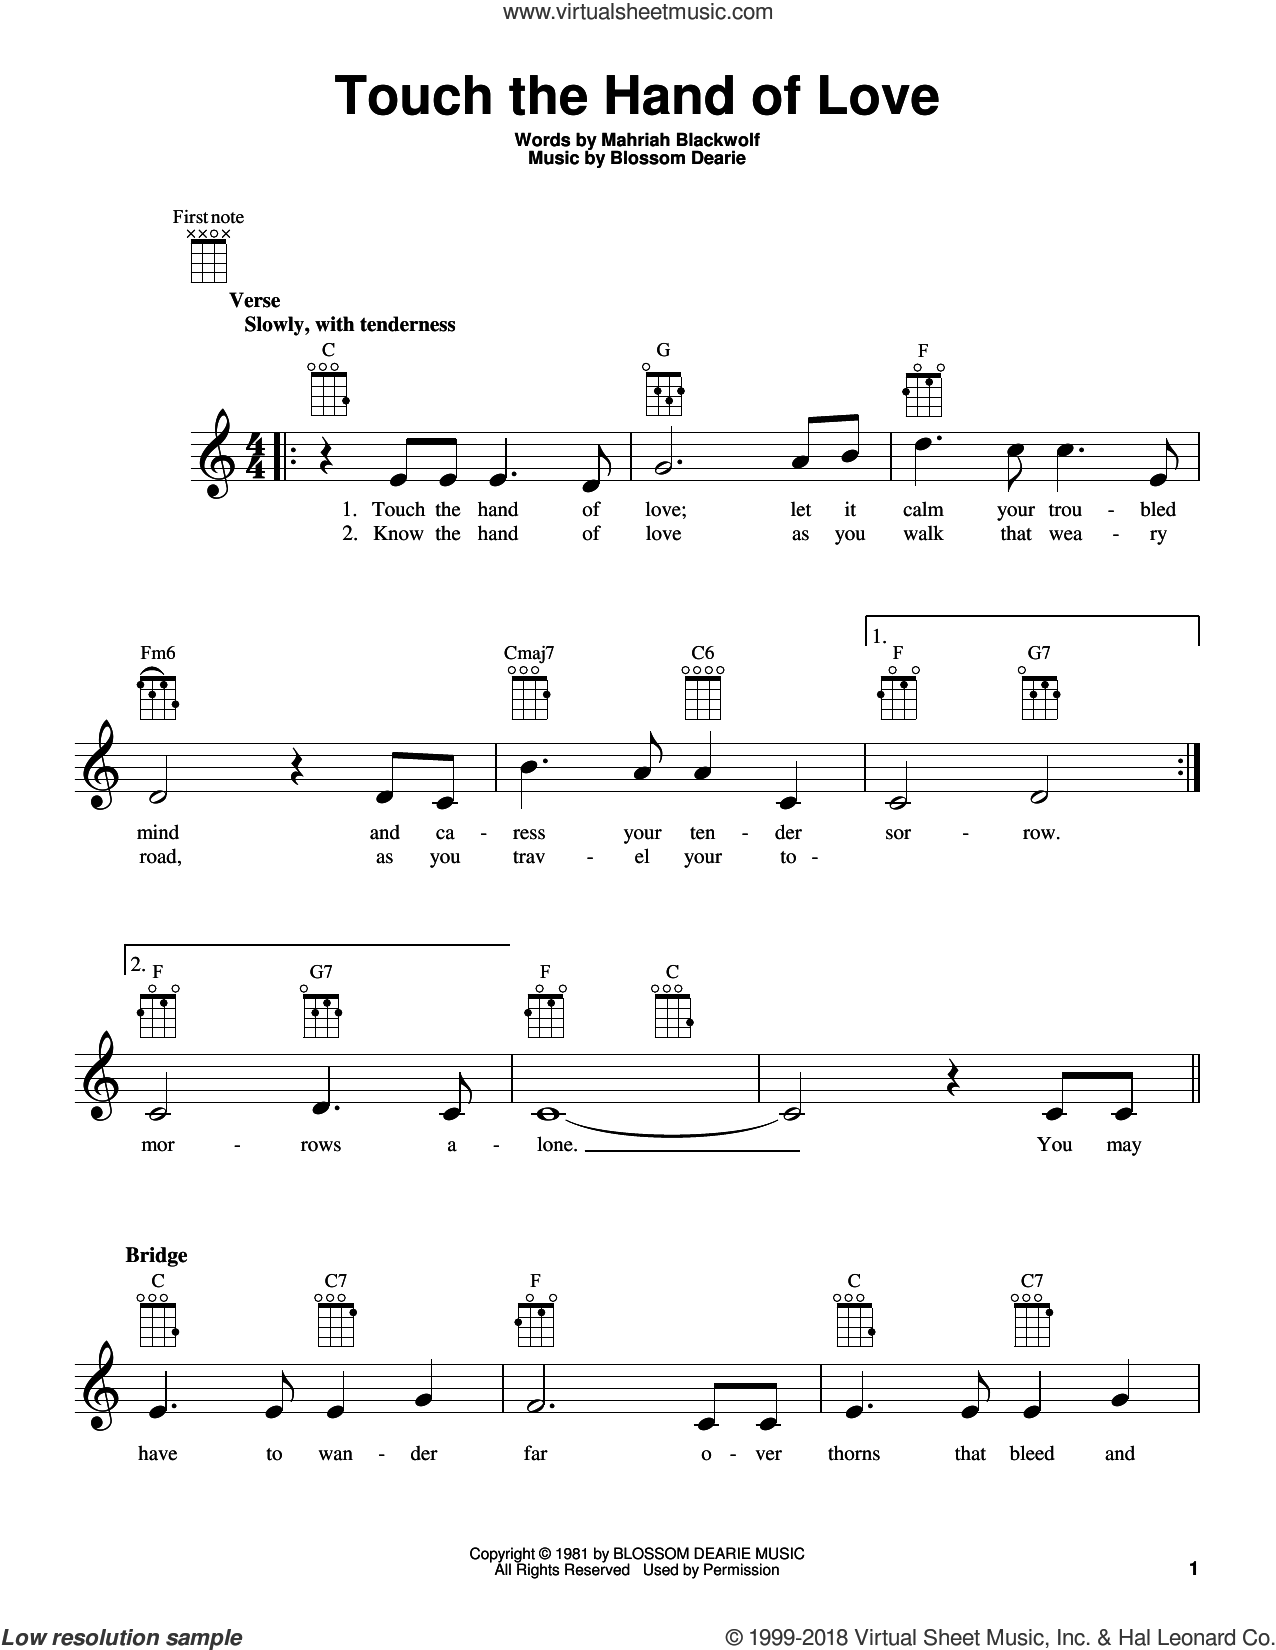 Touch The Hand Of Love sheet music for ukulele by Blossom Dearie and Mahriah Blackwolf, intermediate skill level